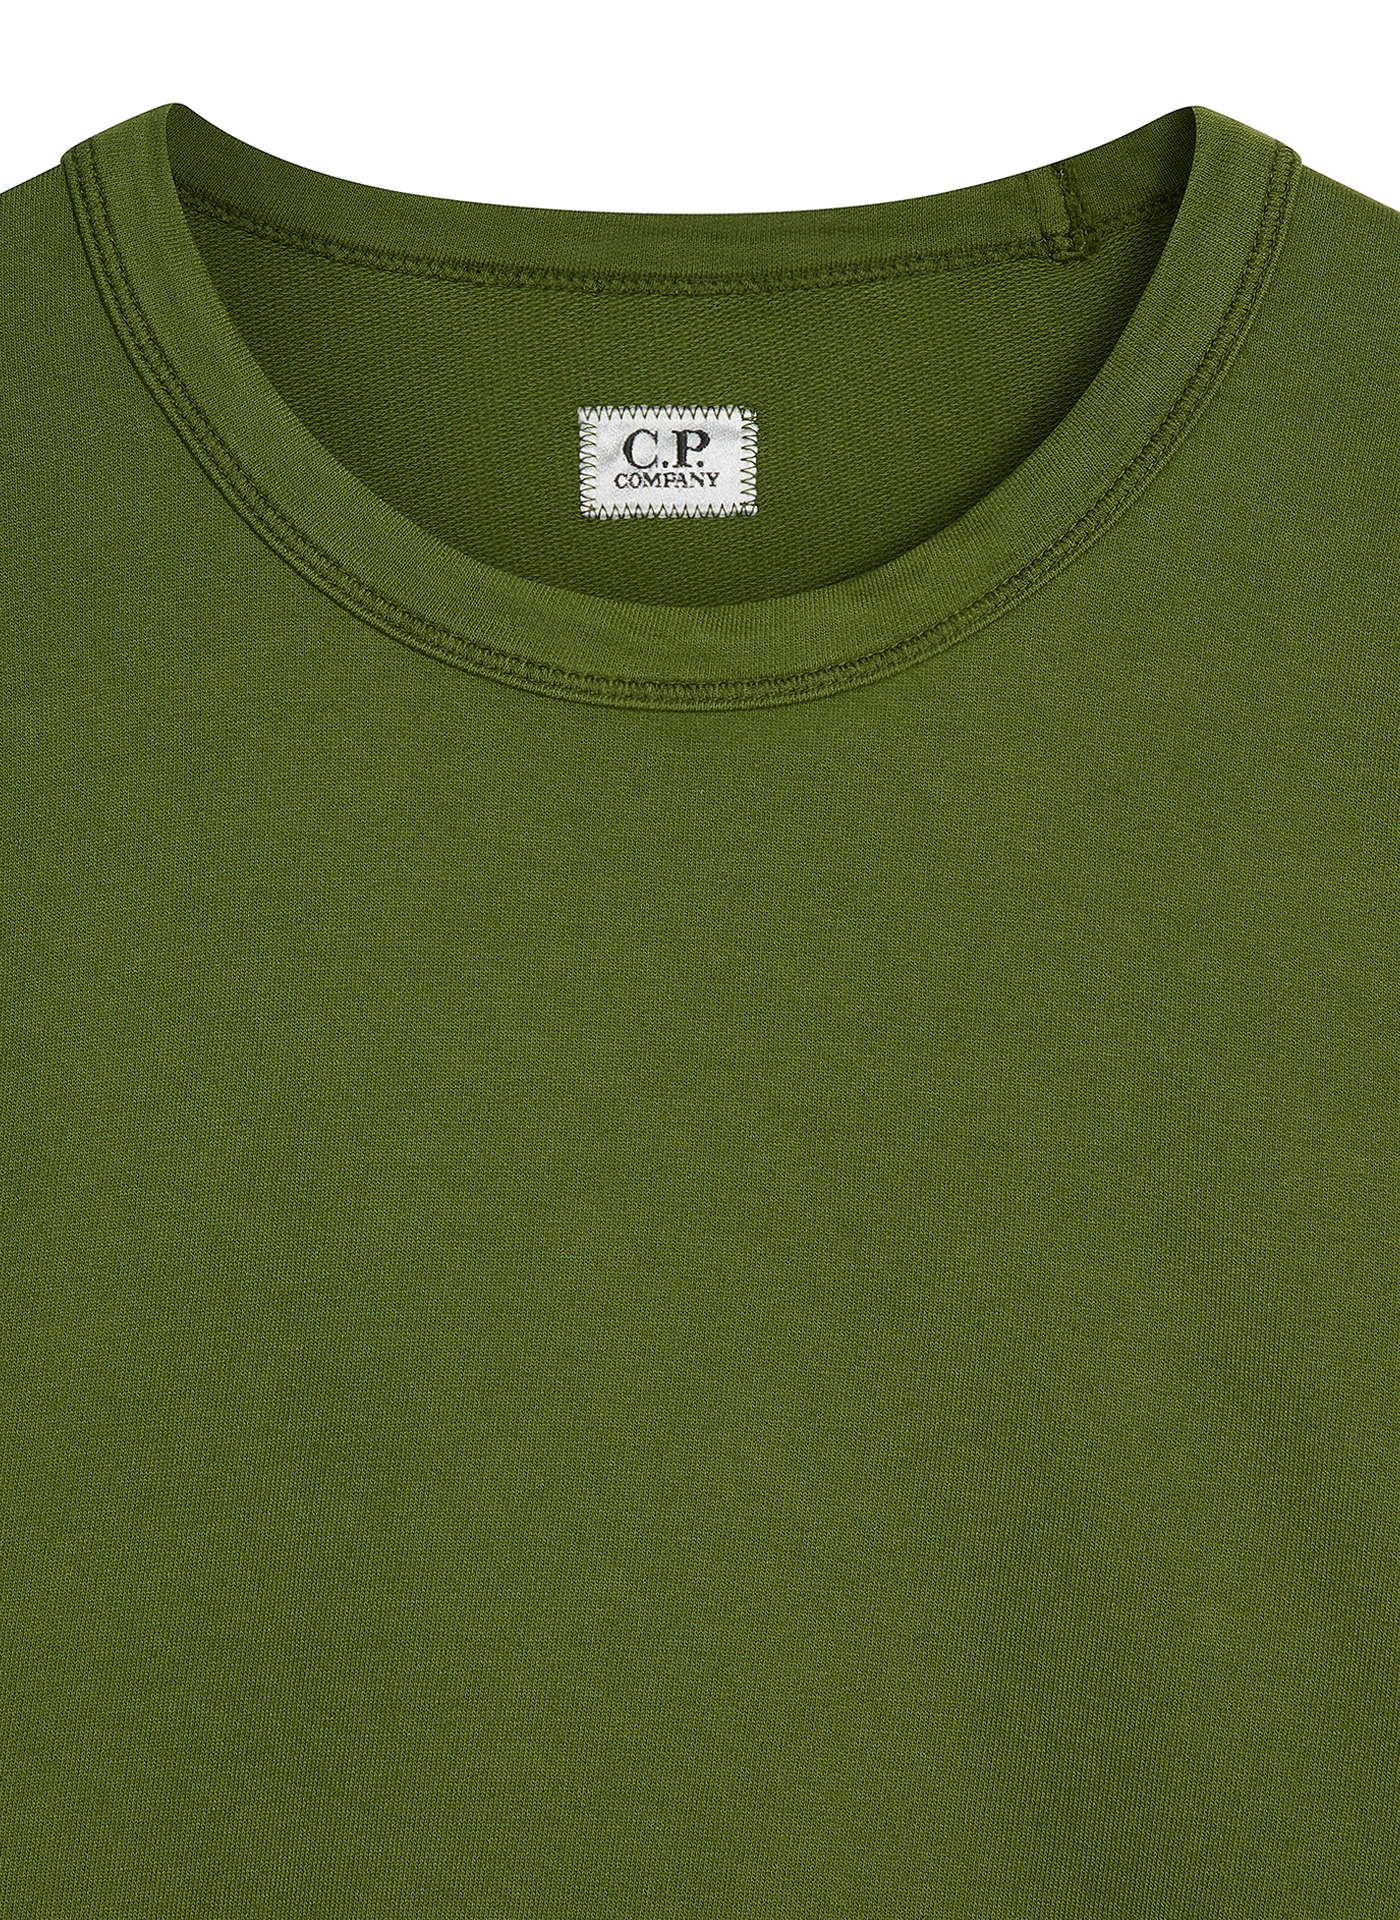 Green C.P. Company jumper detail shot of the label and collar